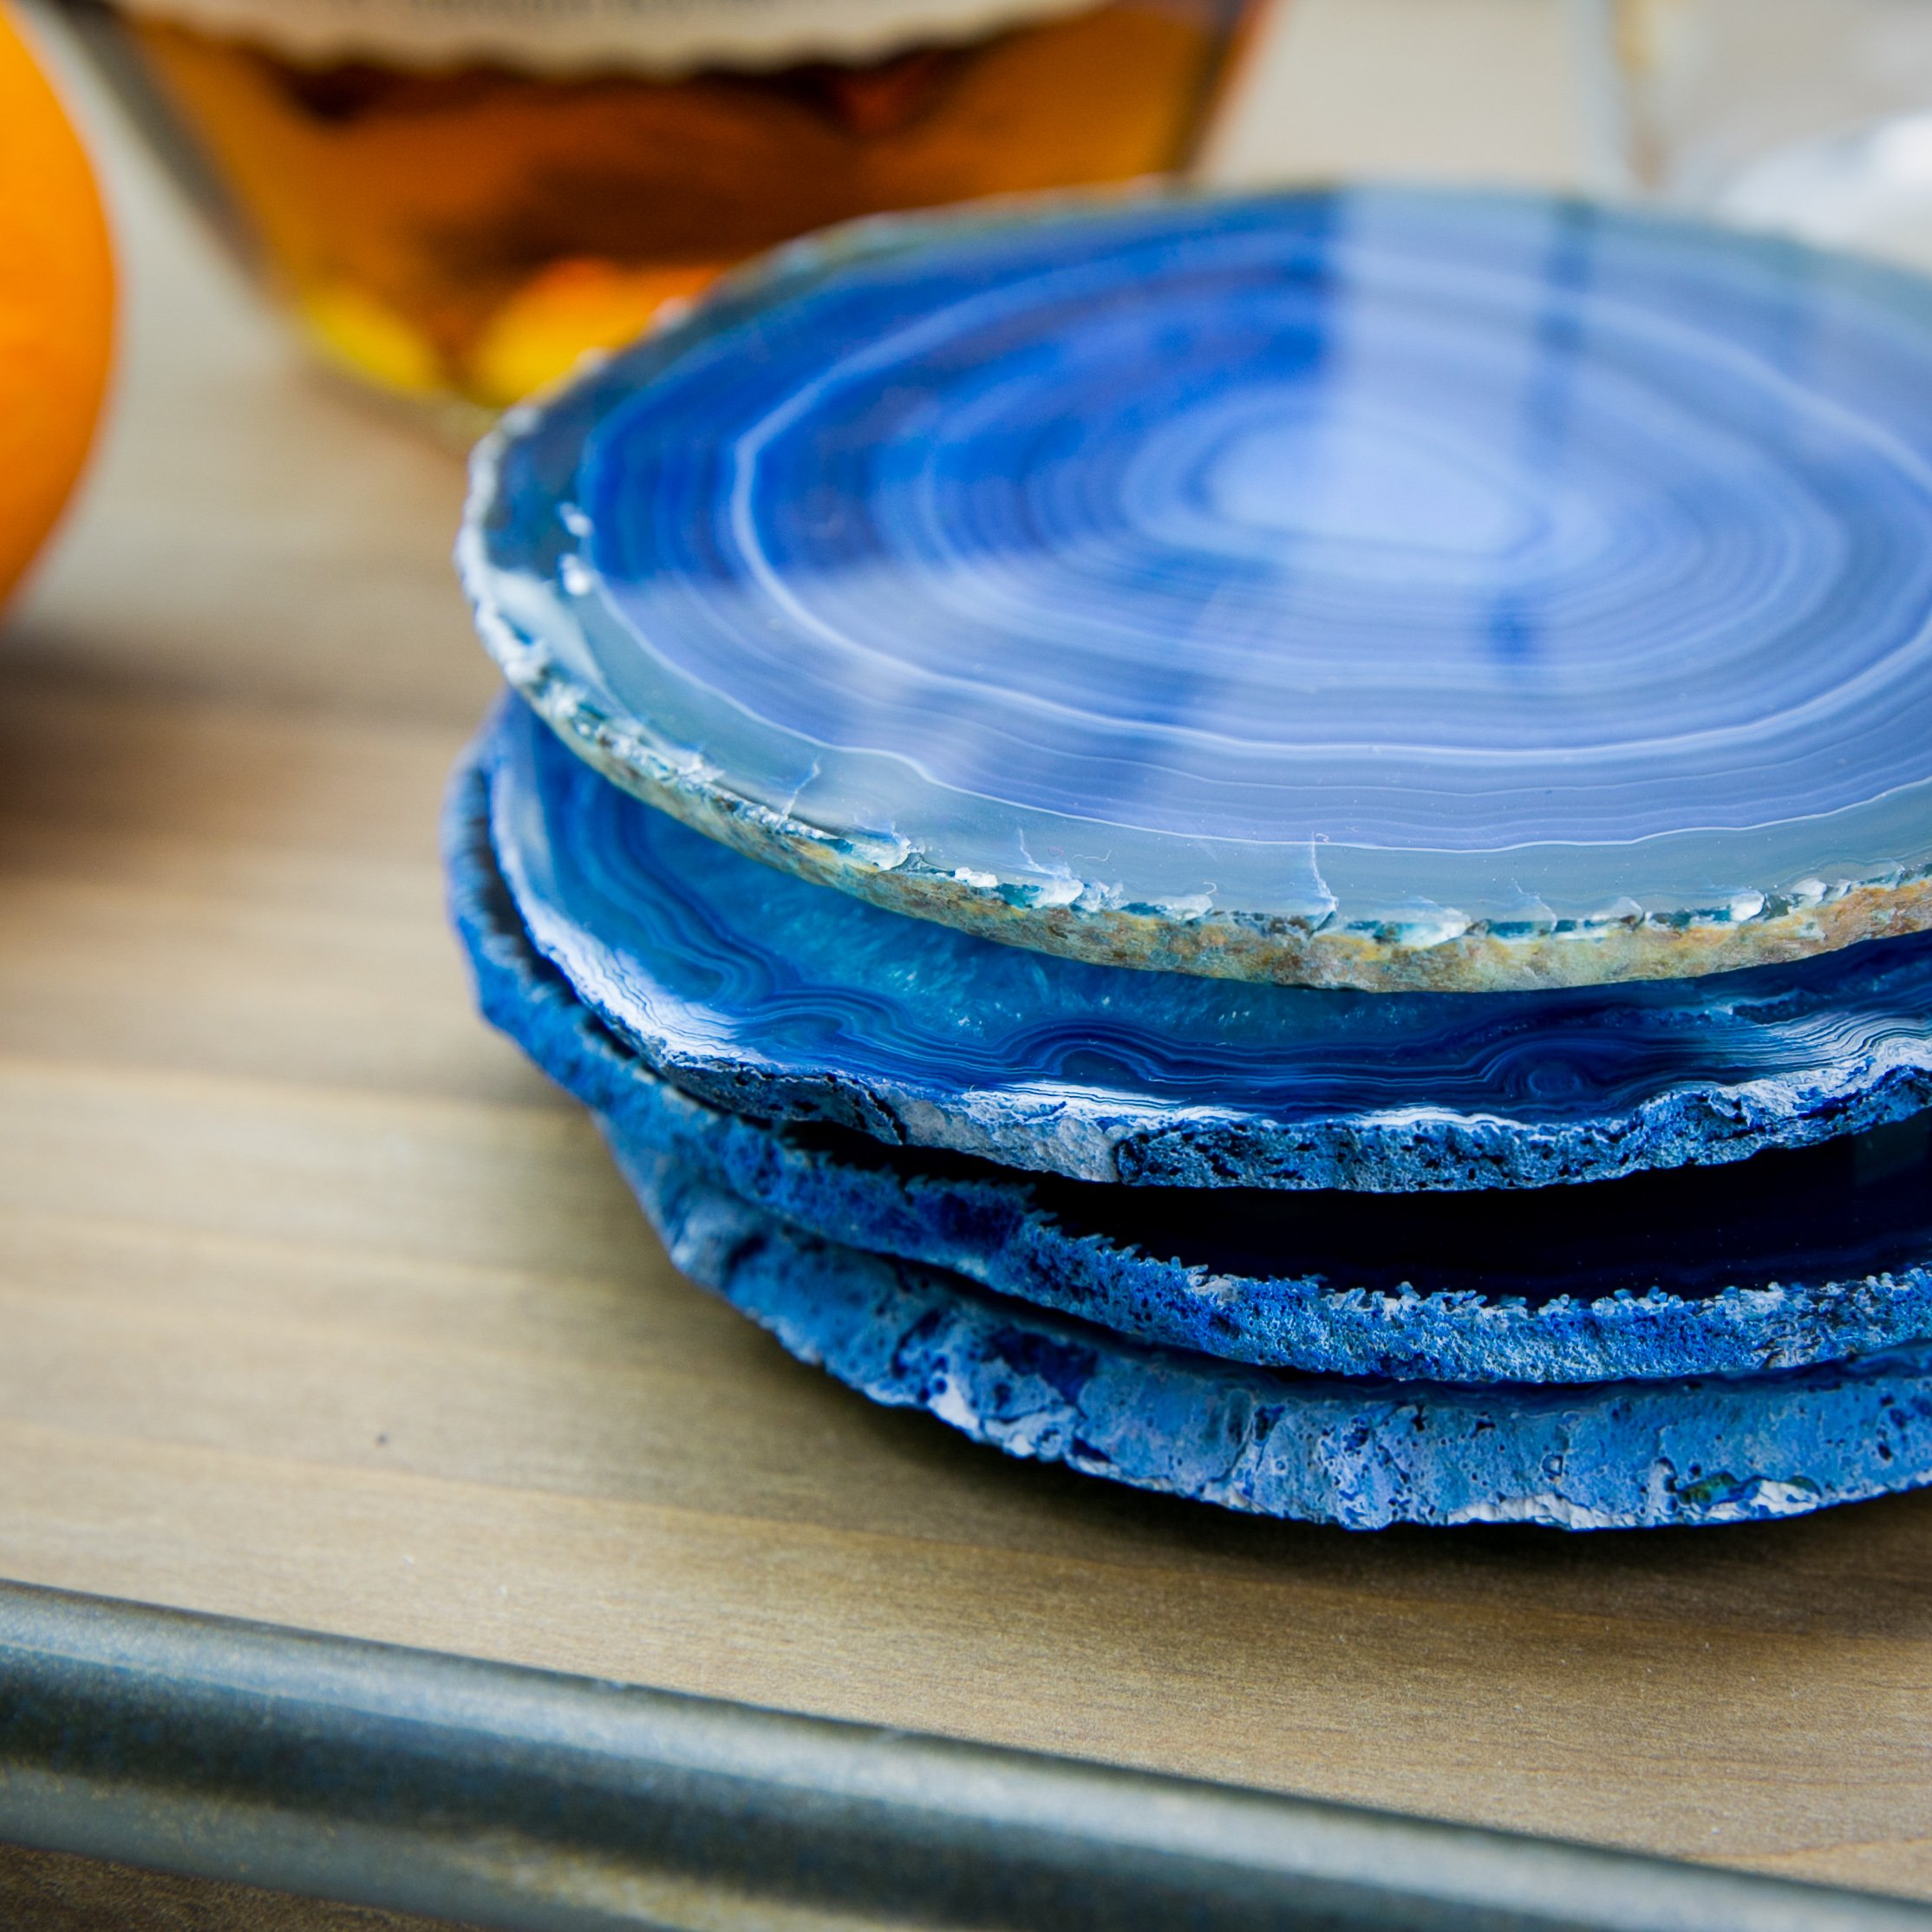 LARGE BLUE AGATE COASTERS Set of 4 Sliced Thick with Felt Bumper (4-5) | Authentic Handmade Brazilian coasters packaged in the USA by Babylon Agate (Image #4)